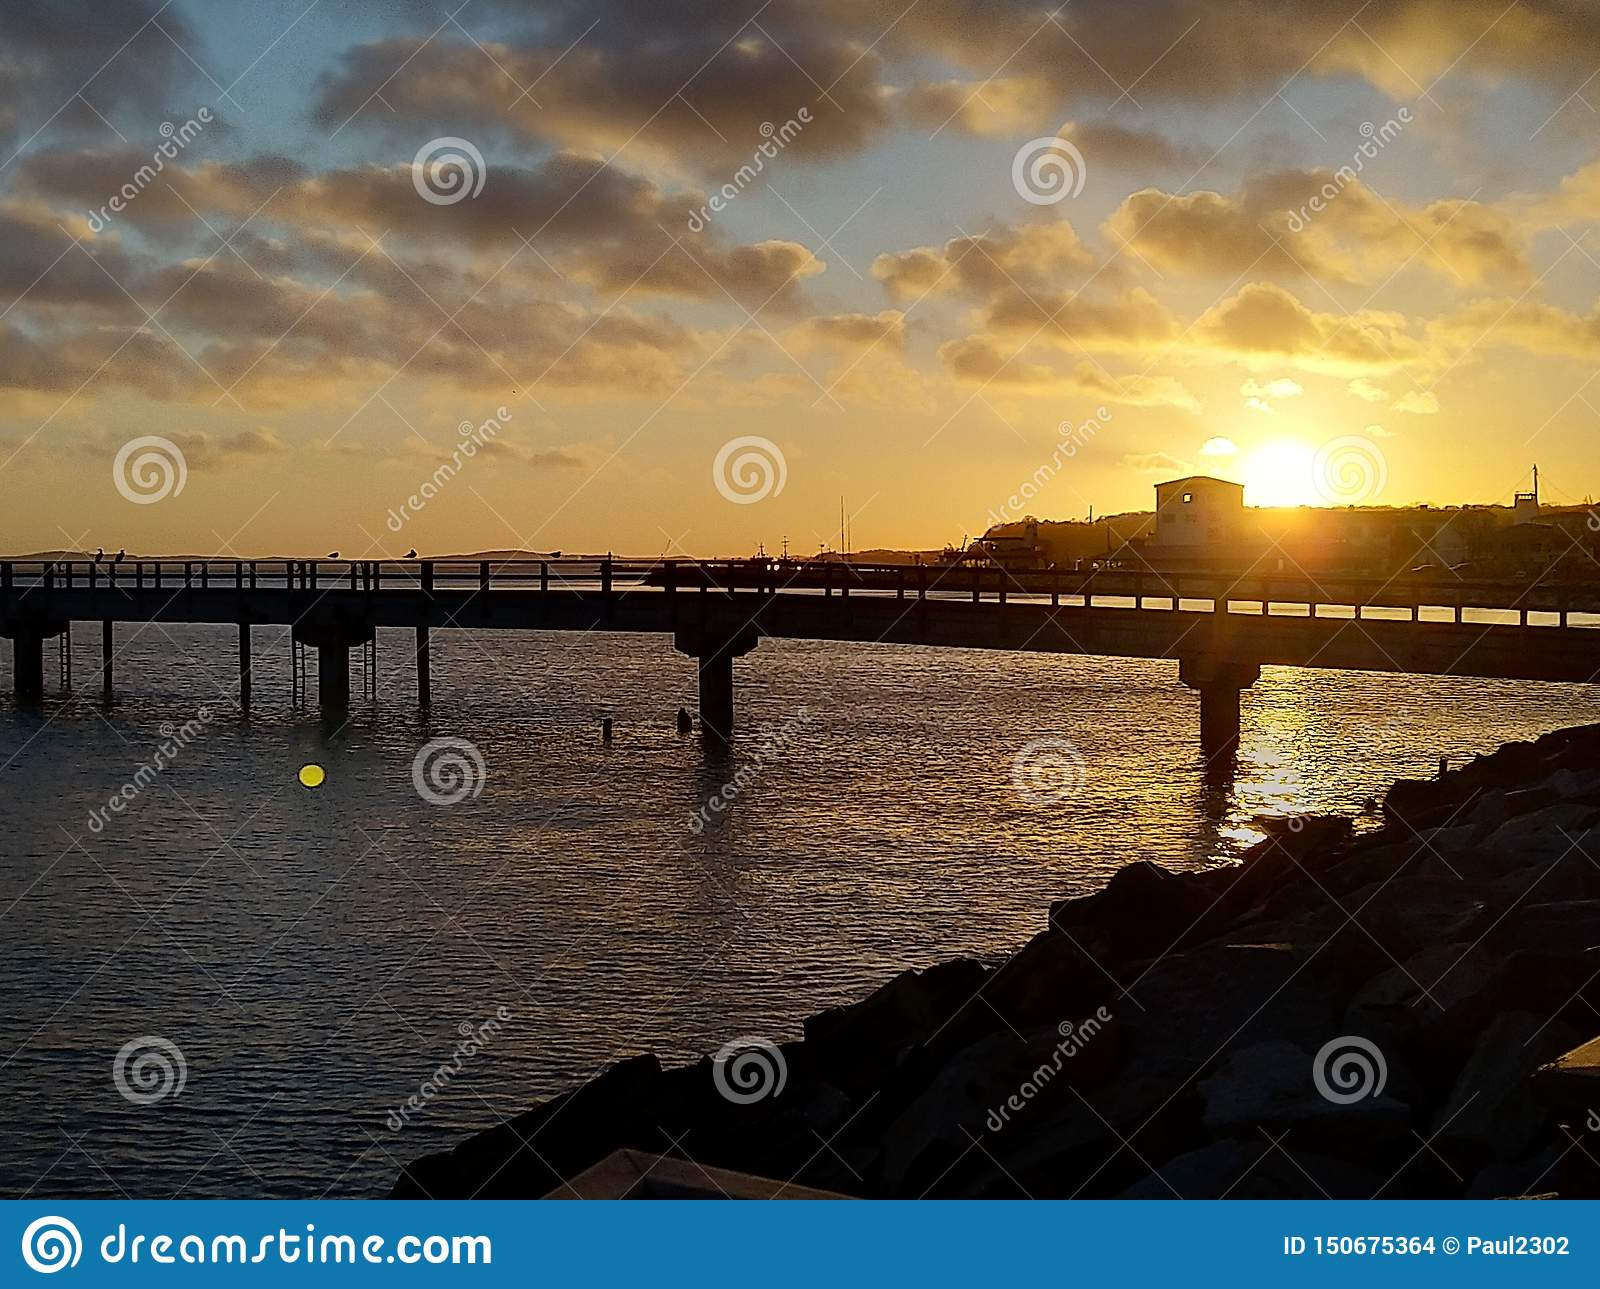 A sunset view of the Pier in the Port of Sassnitz